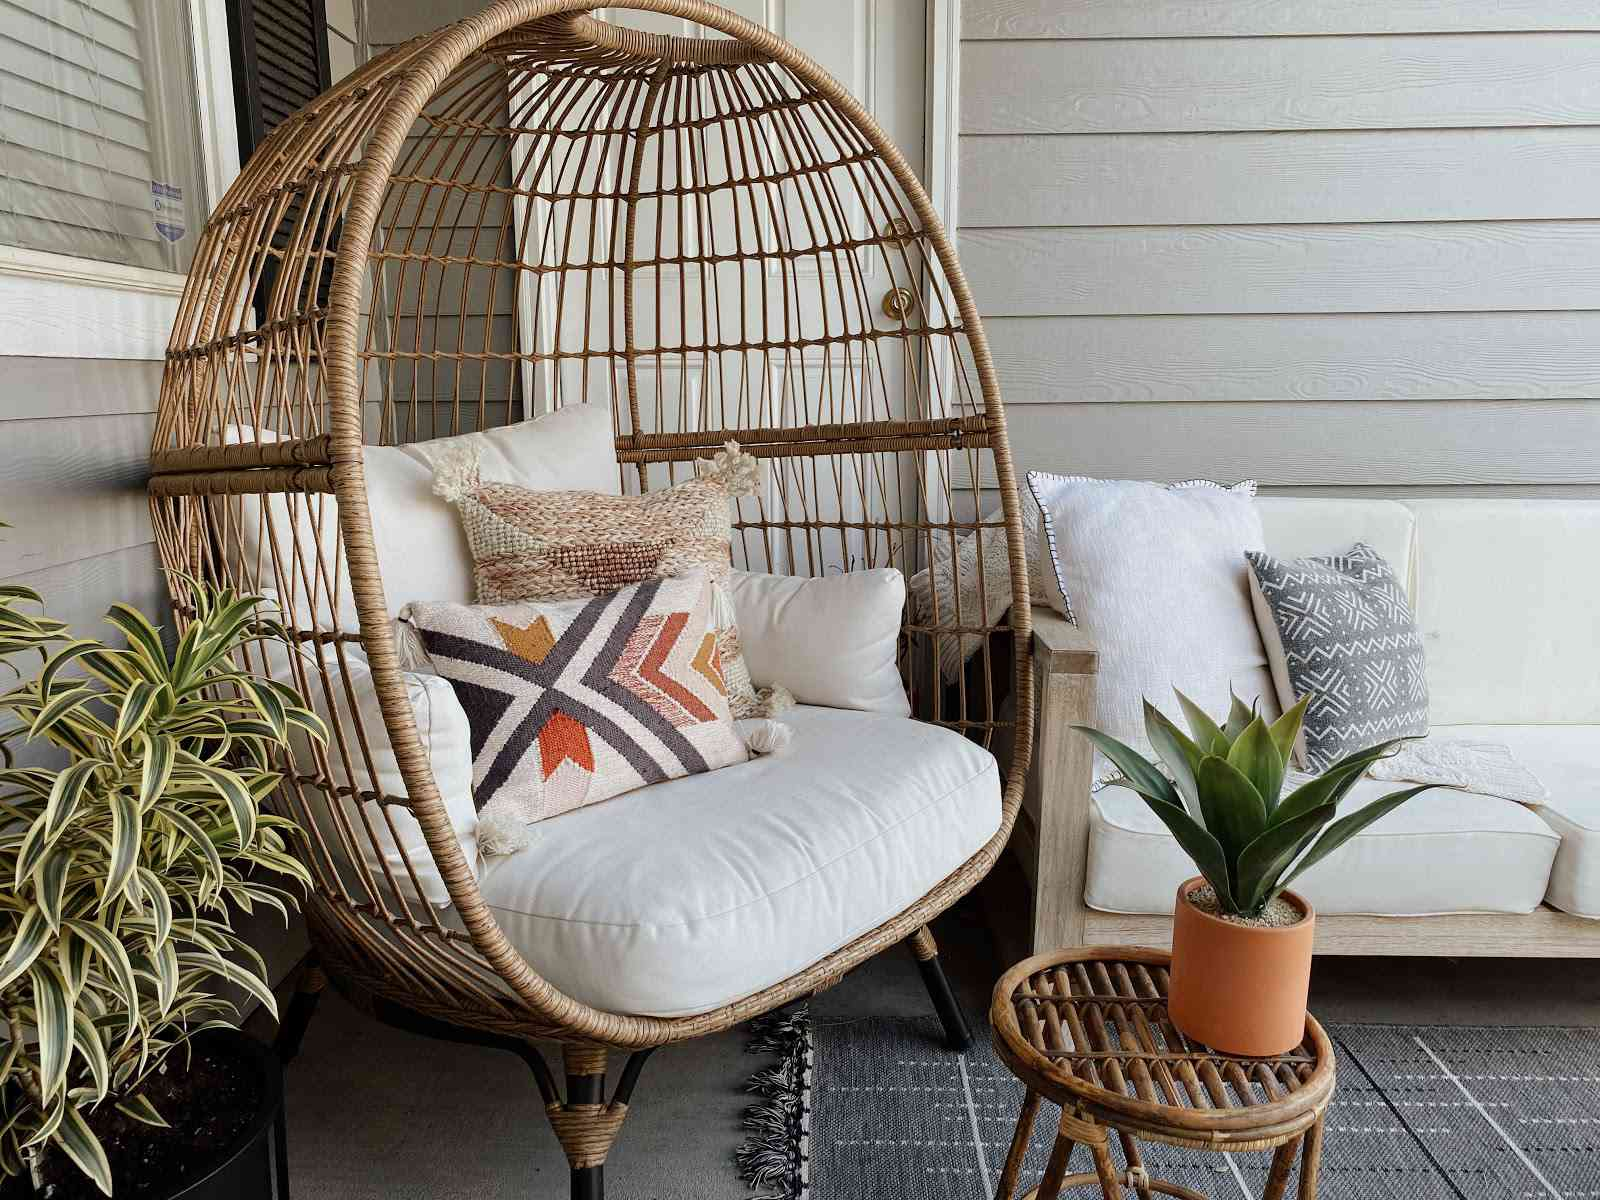 outdoor space with comfortable chairs